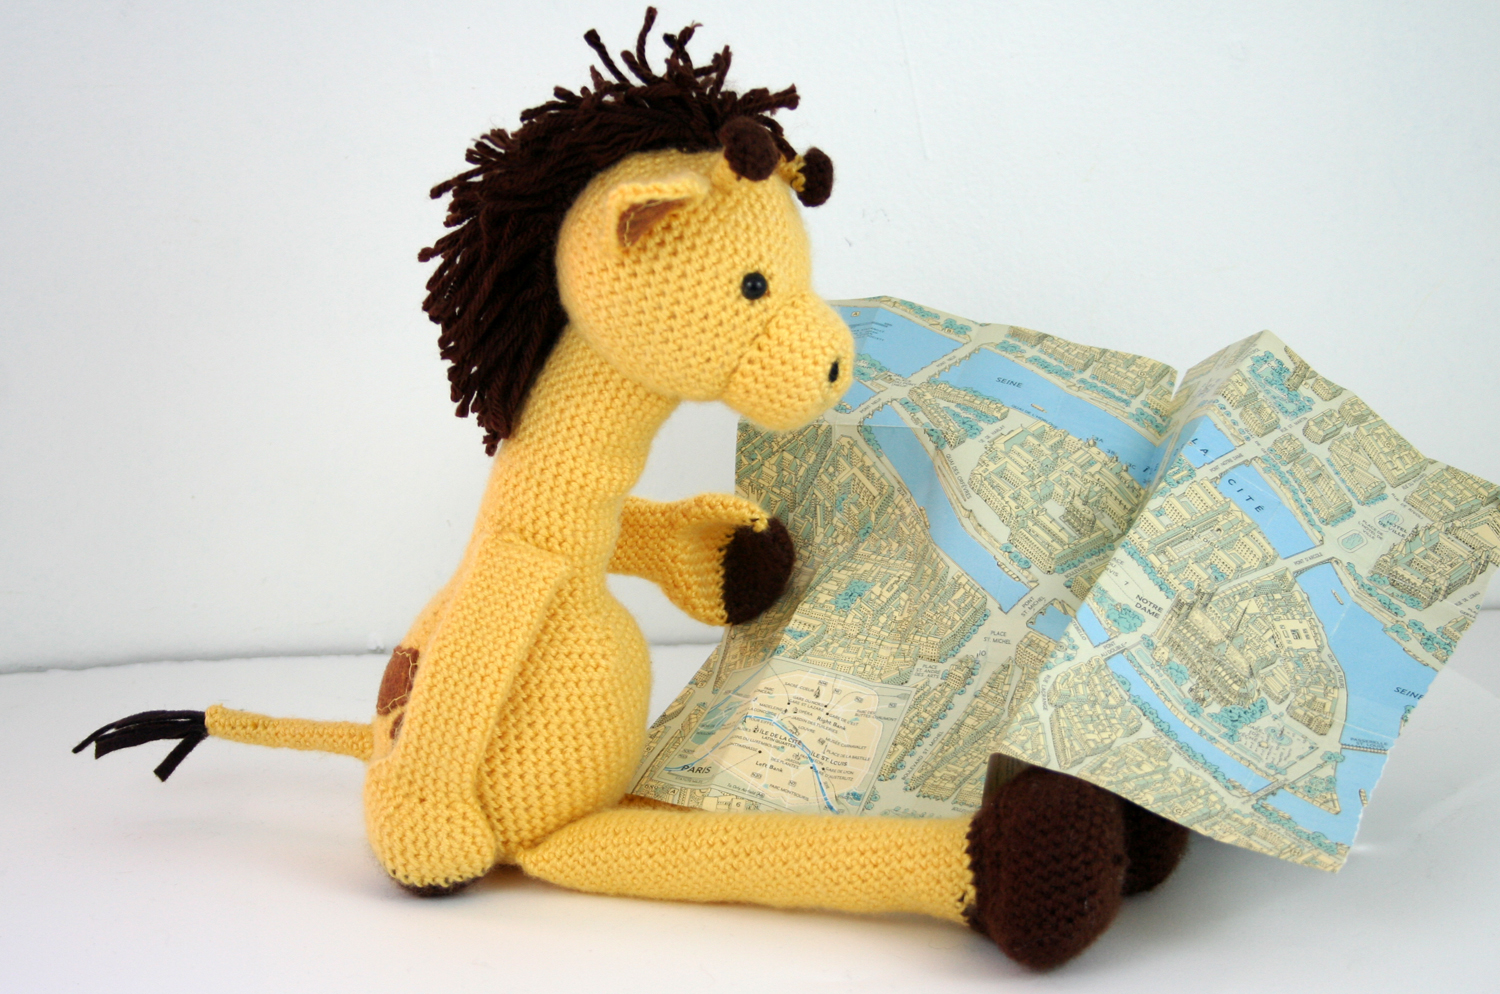 giraffe and map